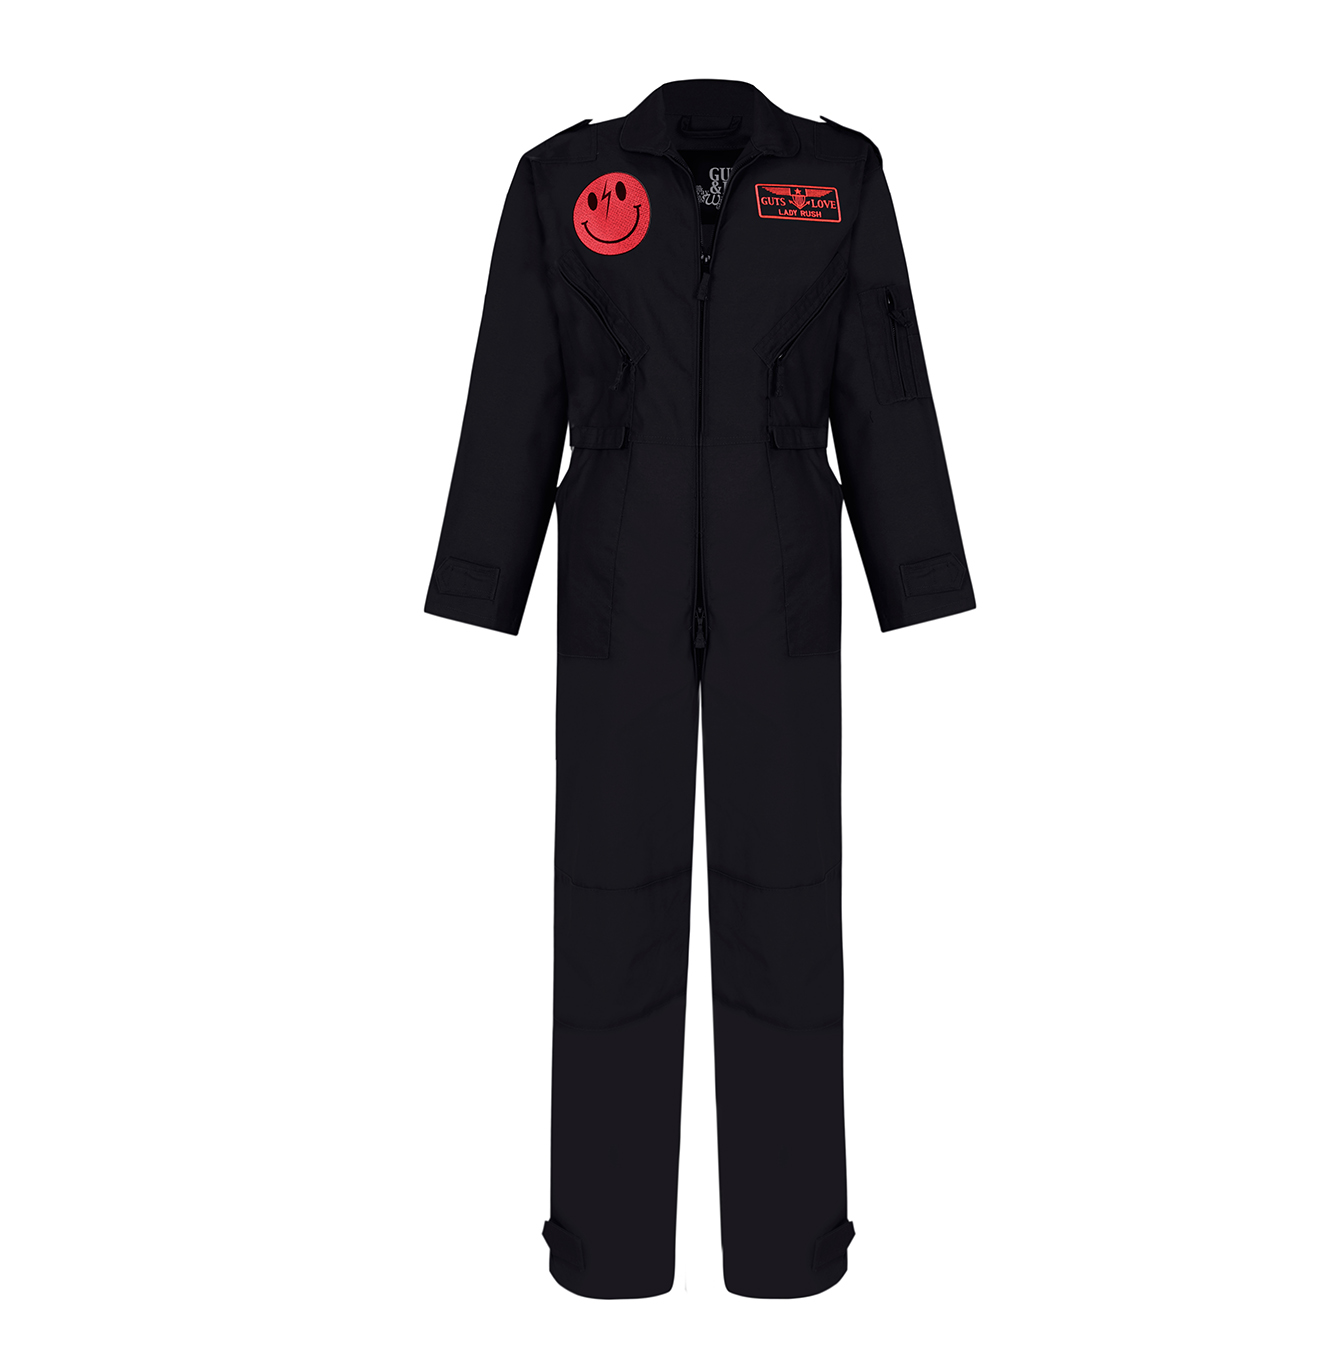 MONO TOP GUTS COVERALL RUSH by Guts&Love vista delantera